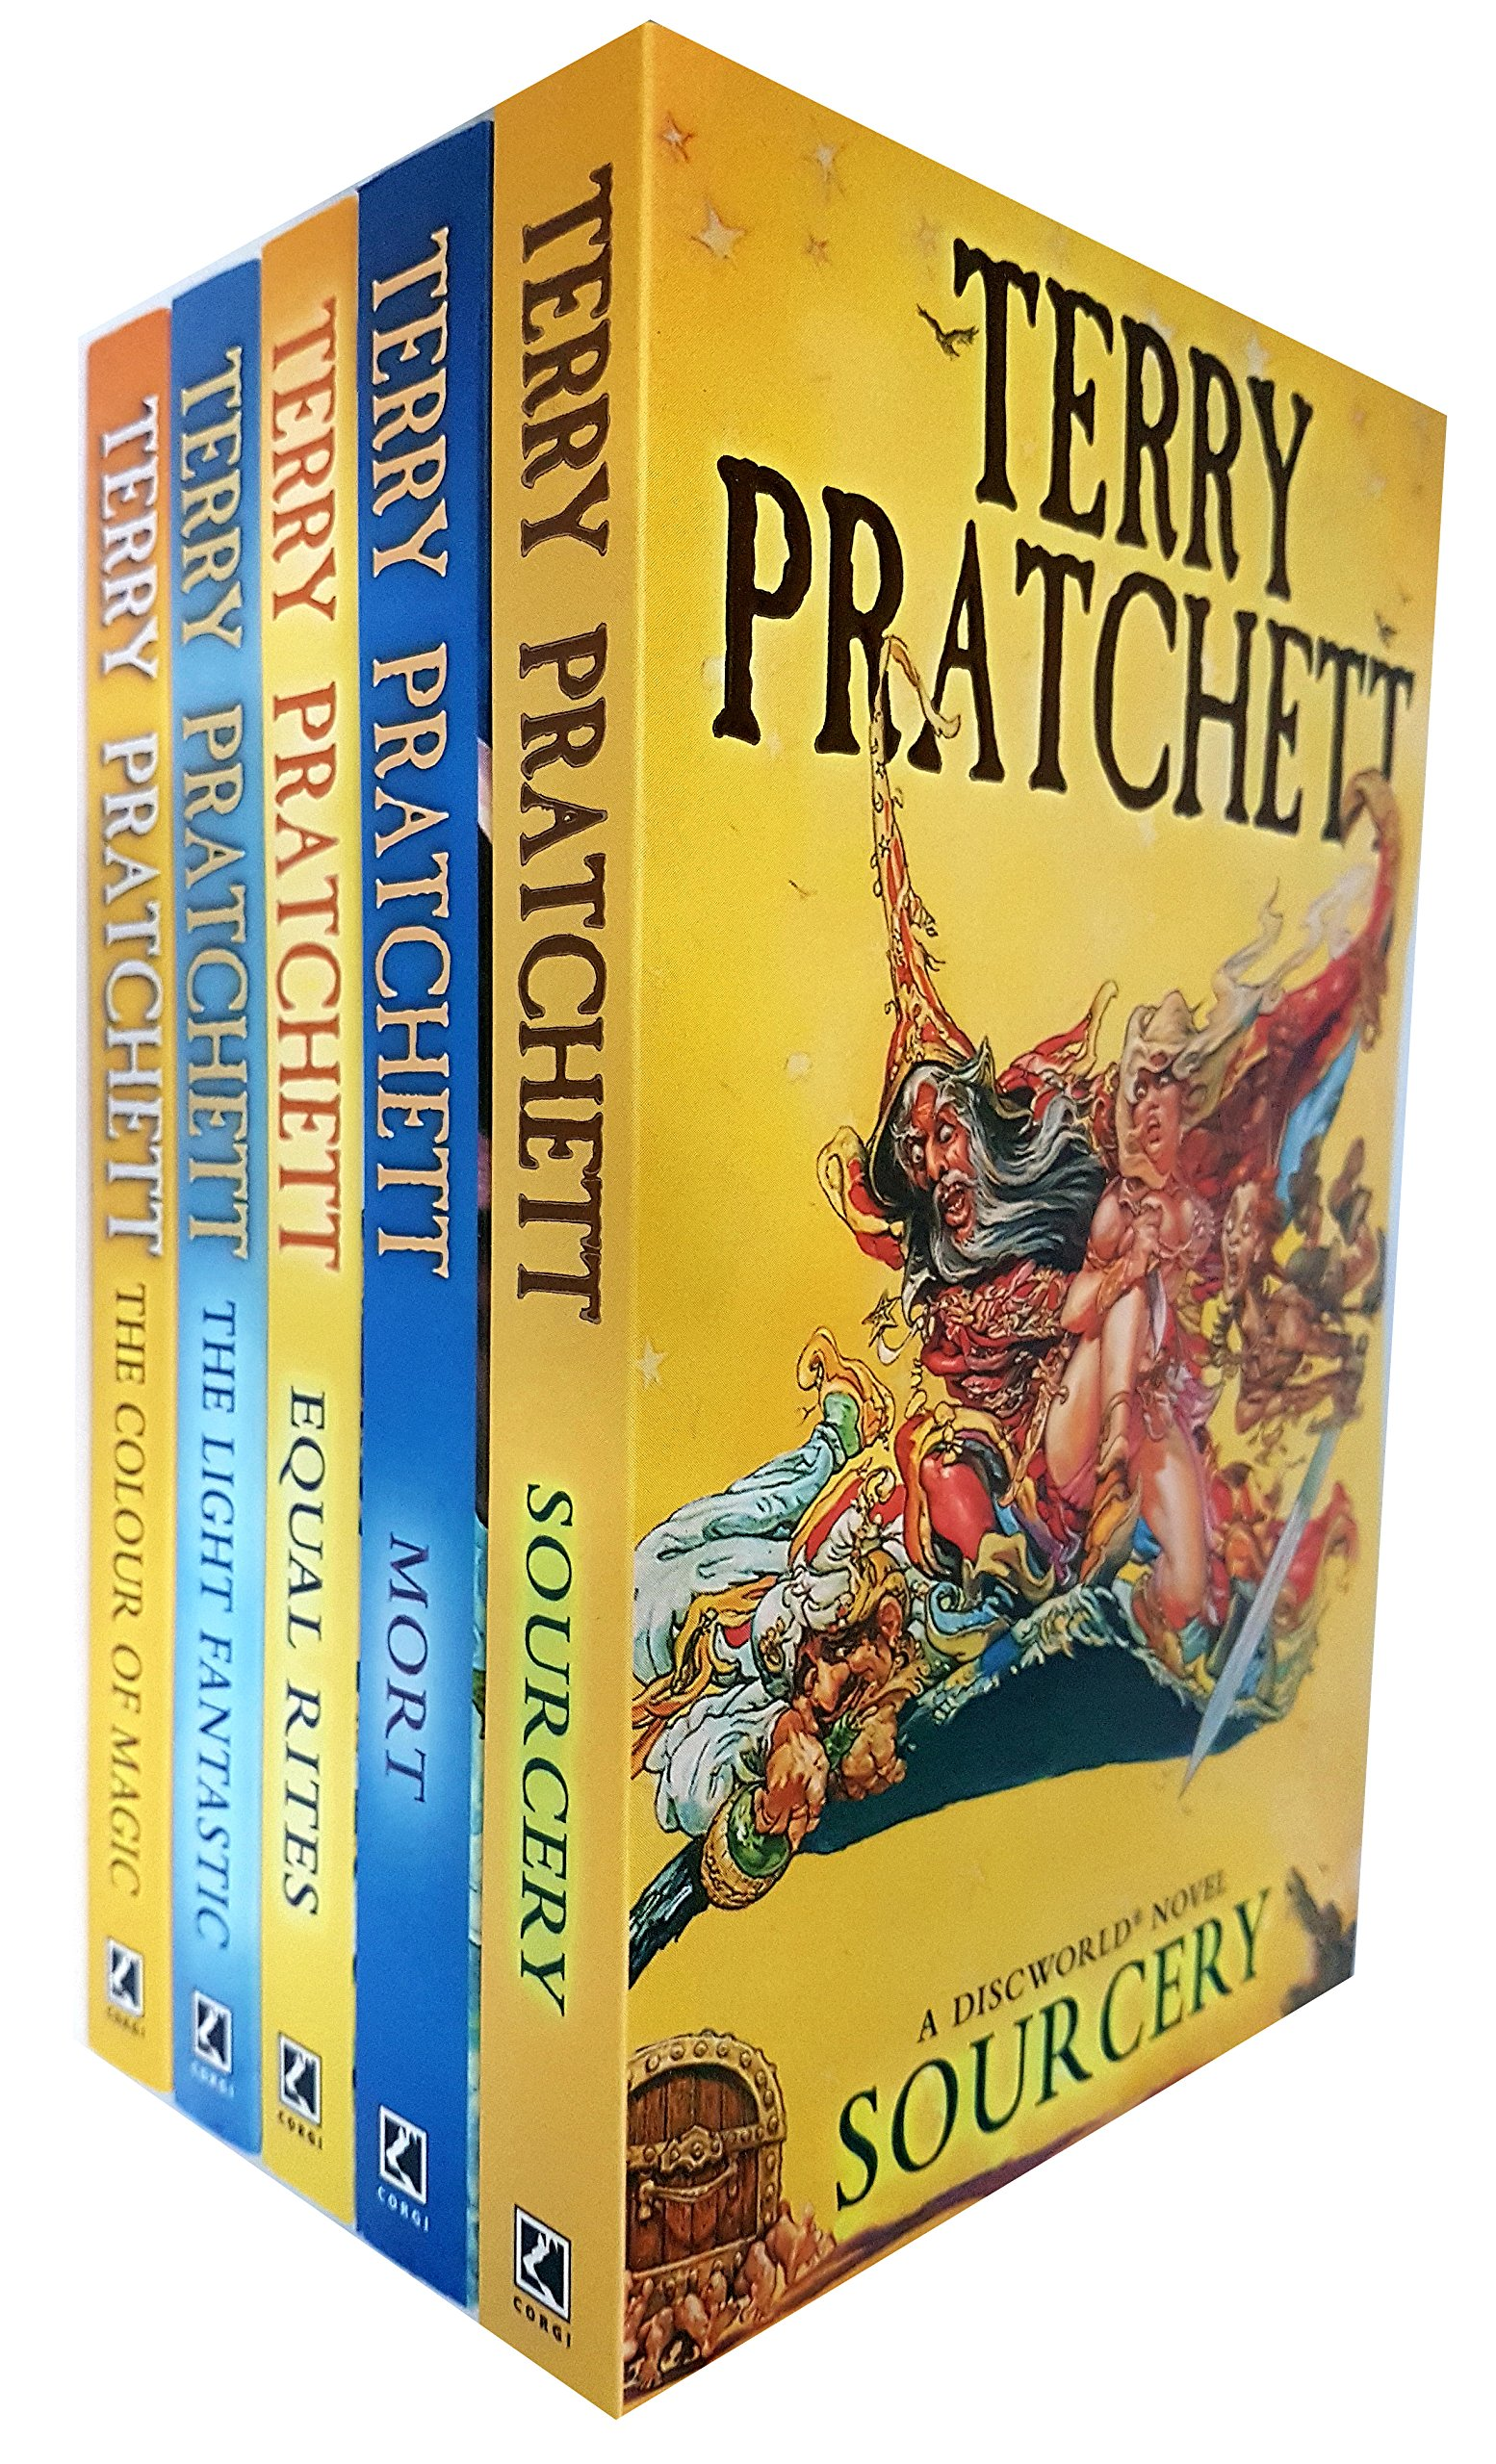 Image result for Terry Pratchett's Discworld books